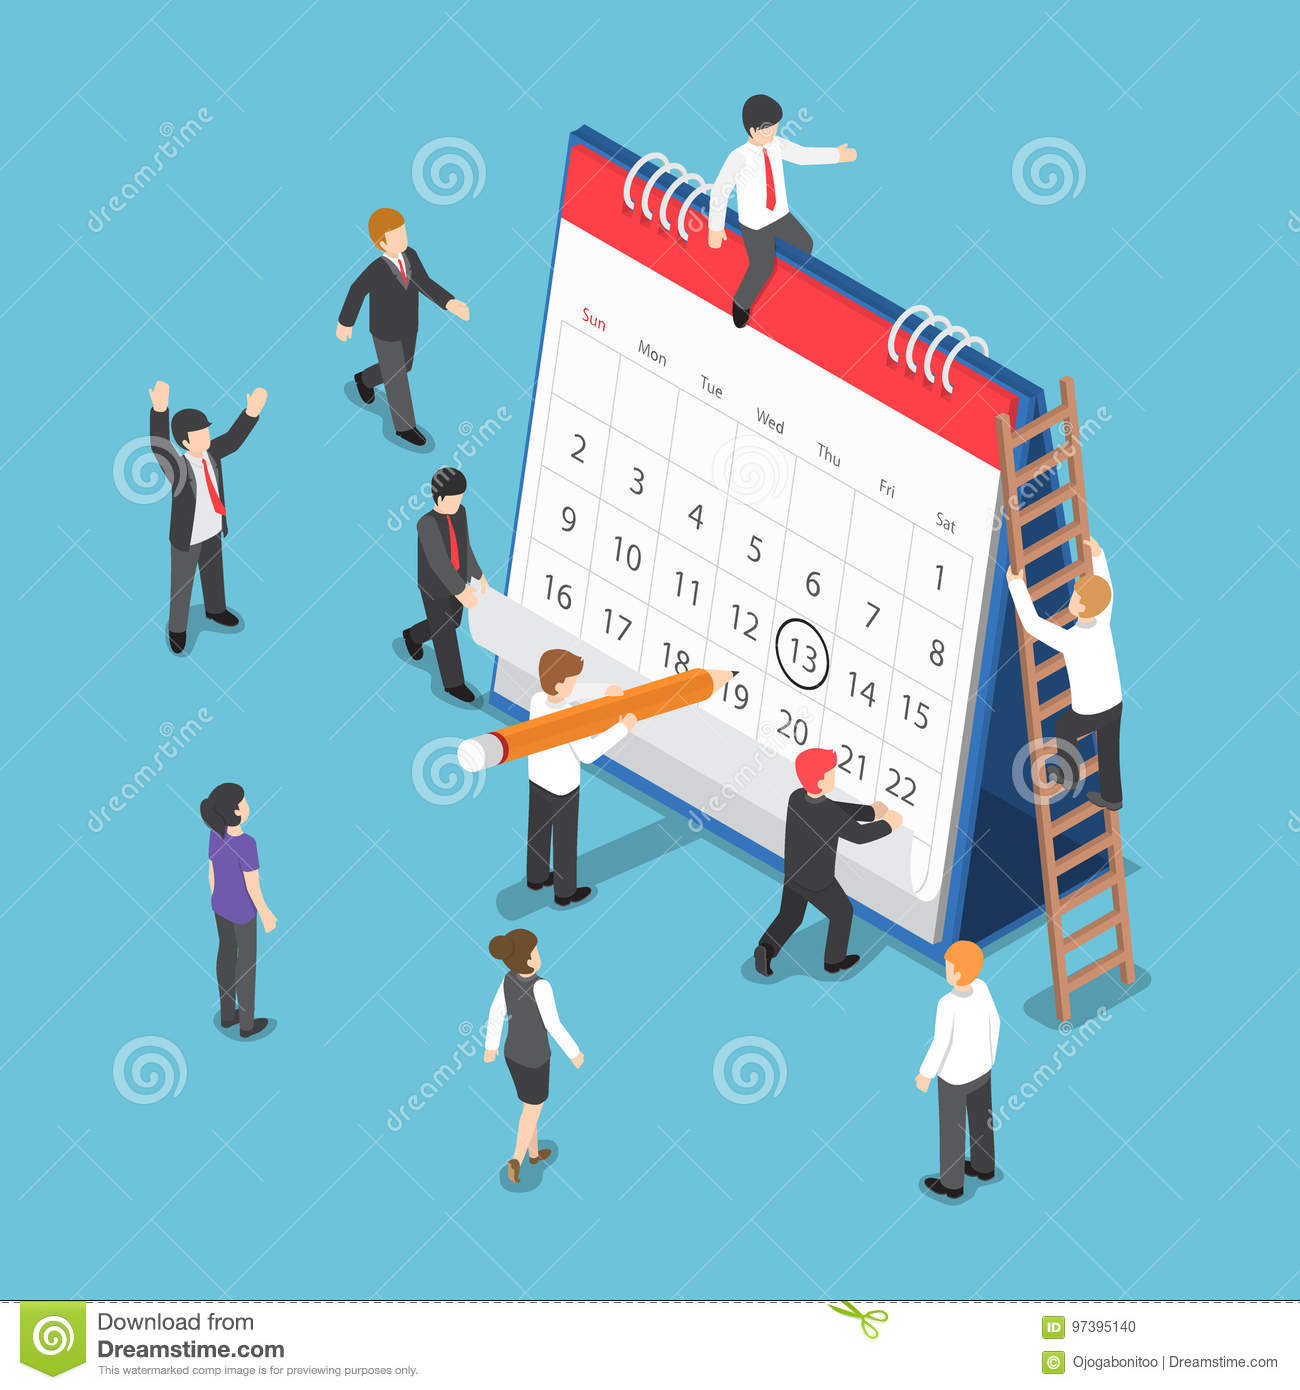 Isometric Business People Scheduling Operation on Desk Calendar